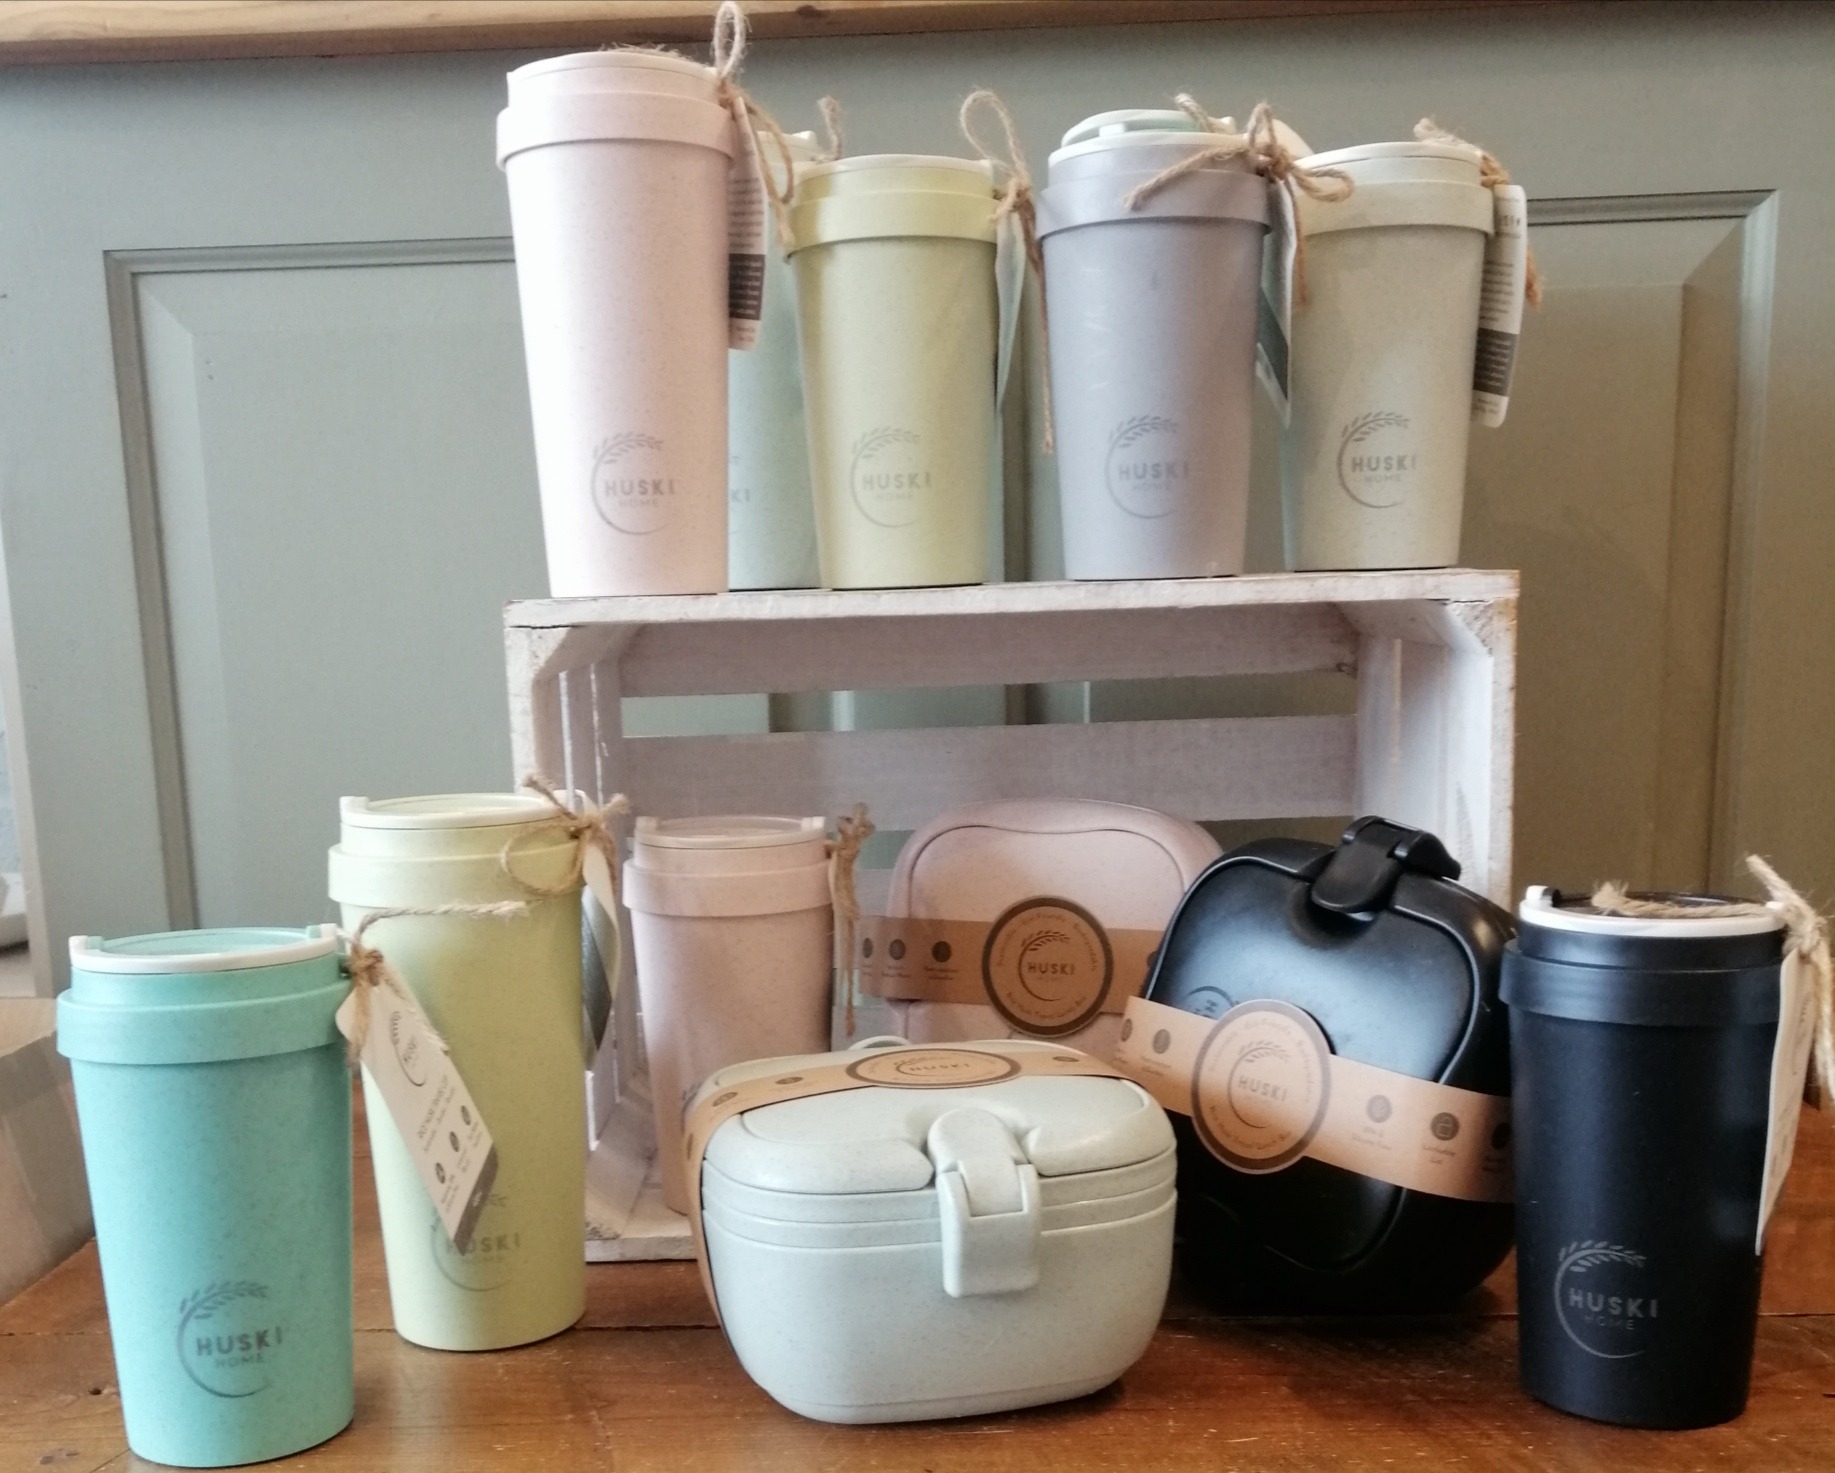 Huski Home Travel Mugs and Lunch Boxes